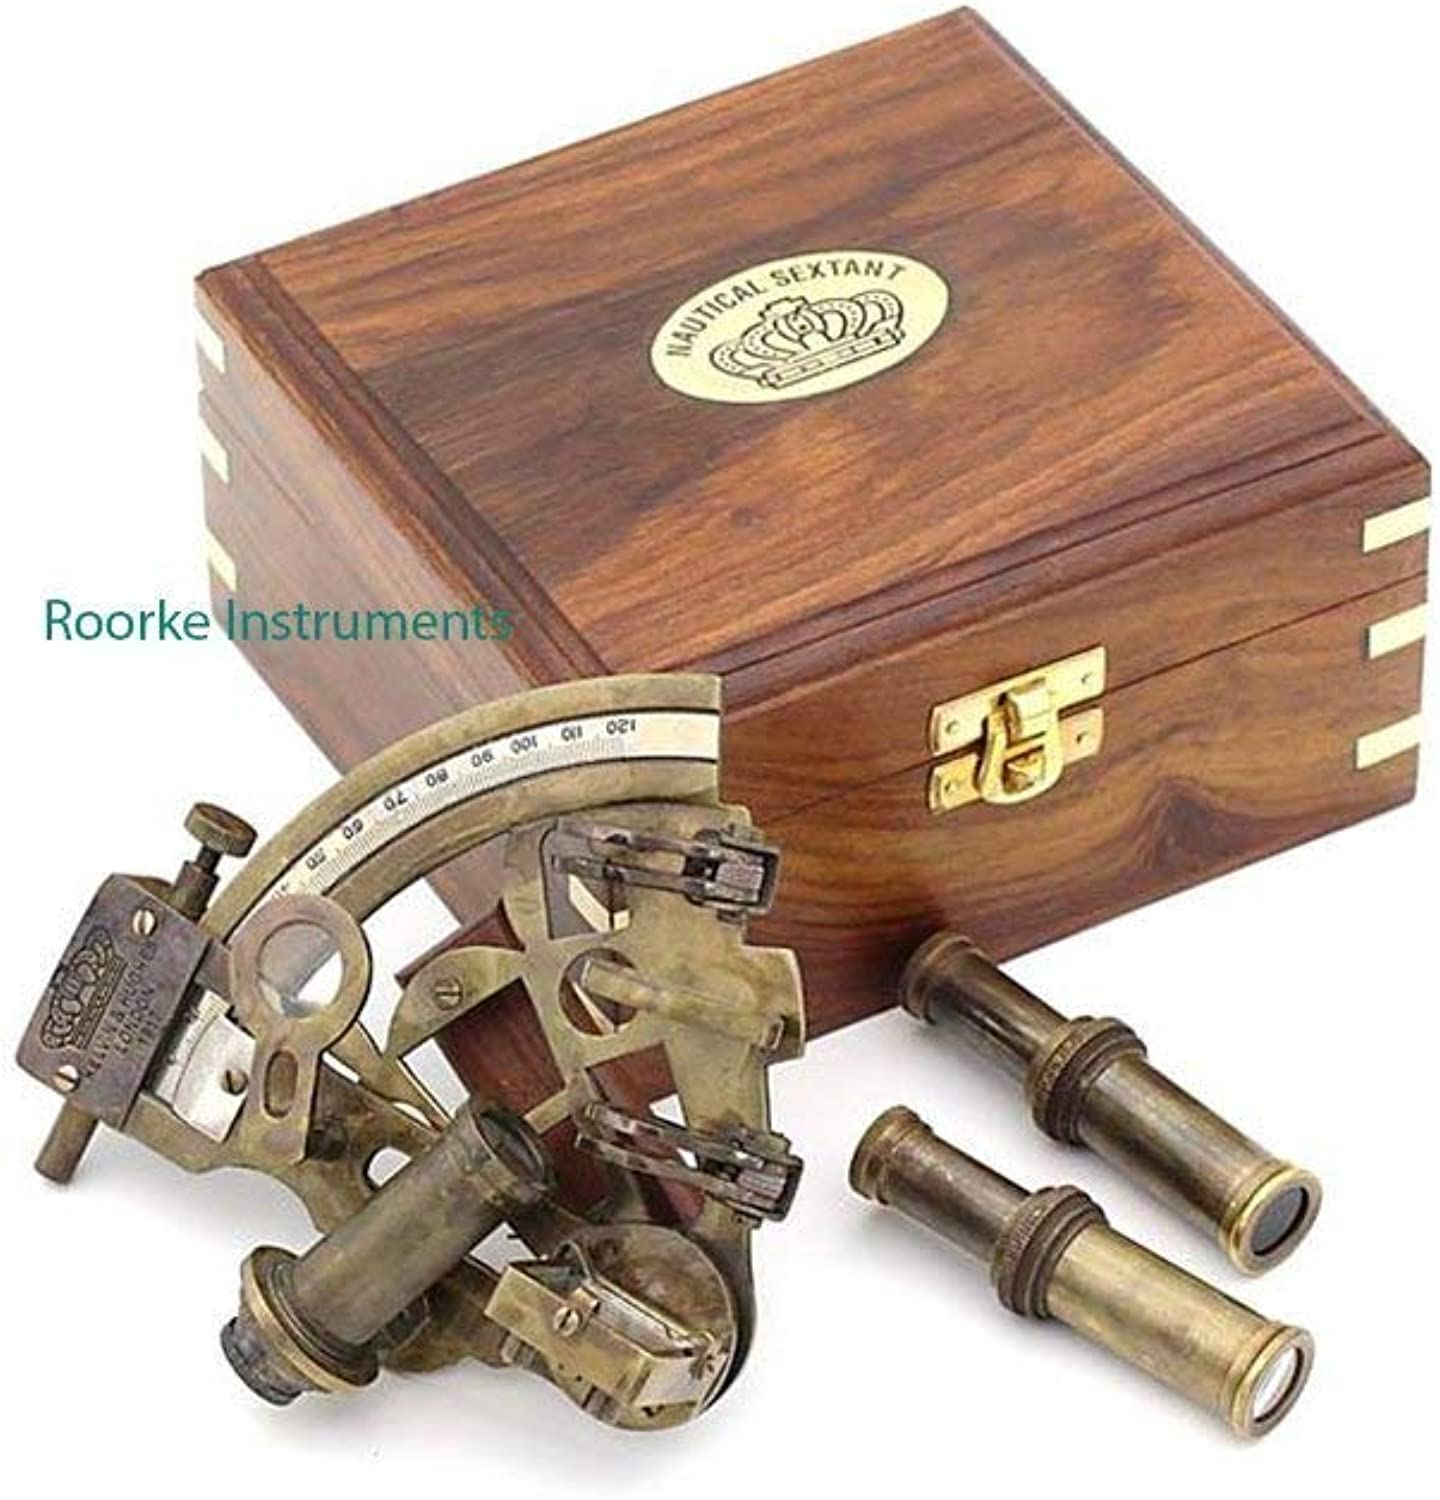 Roorkee Antique Sextant for Navigation Marine Brass Sextant Instrument for Ship  Celestial & Nautical Sextant with Two Extra Sighting Telescope Astrolable Sextant Tool with Wooden Box Case